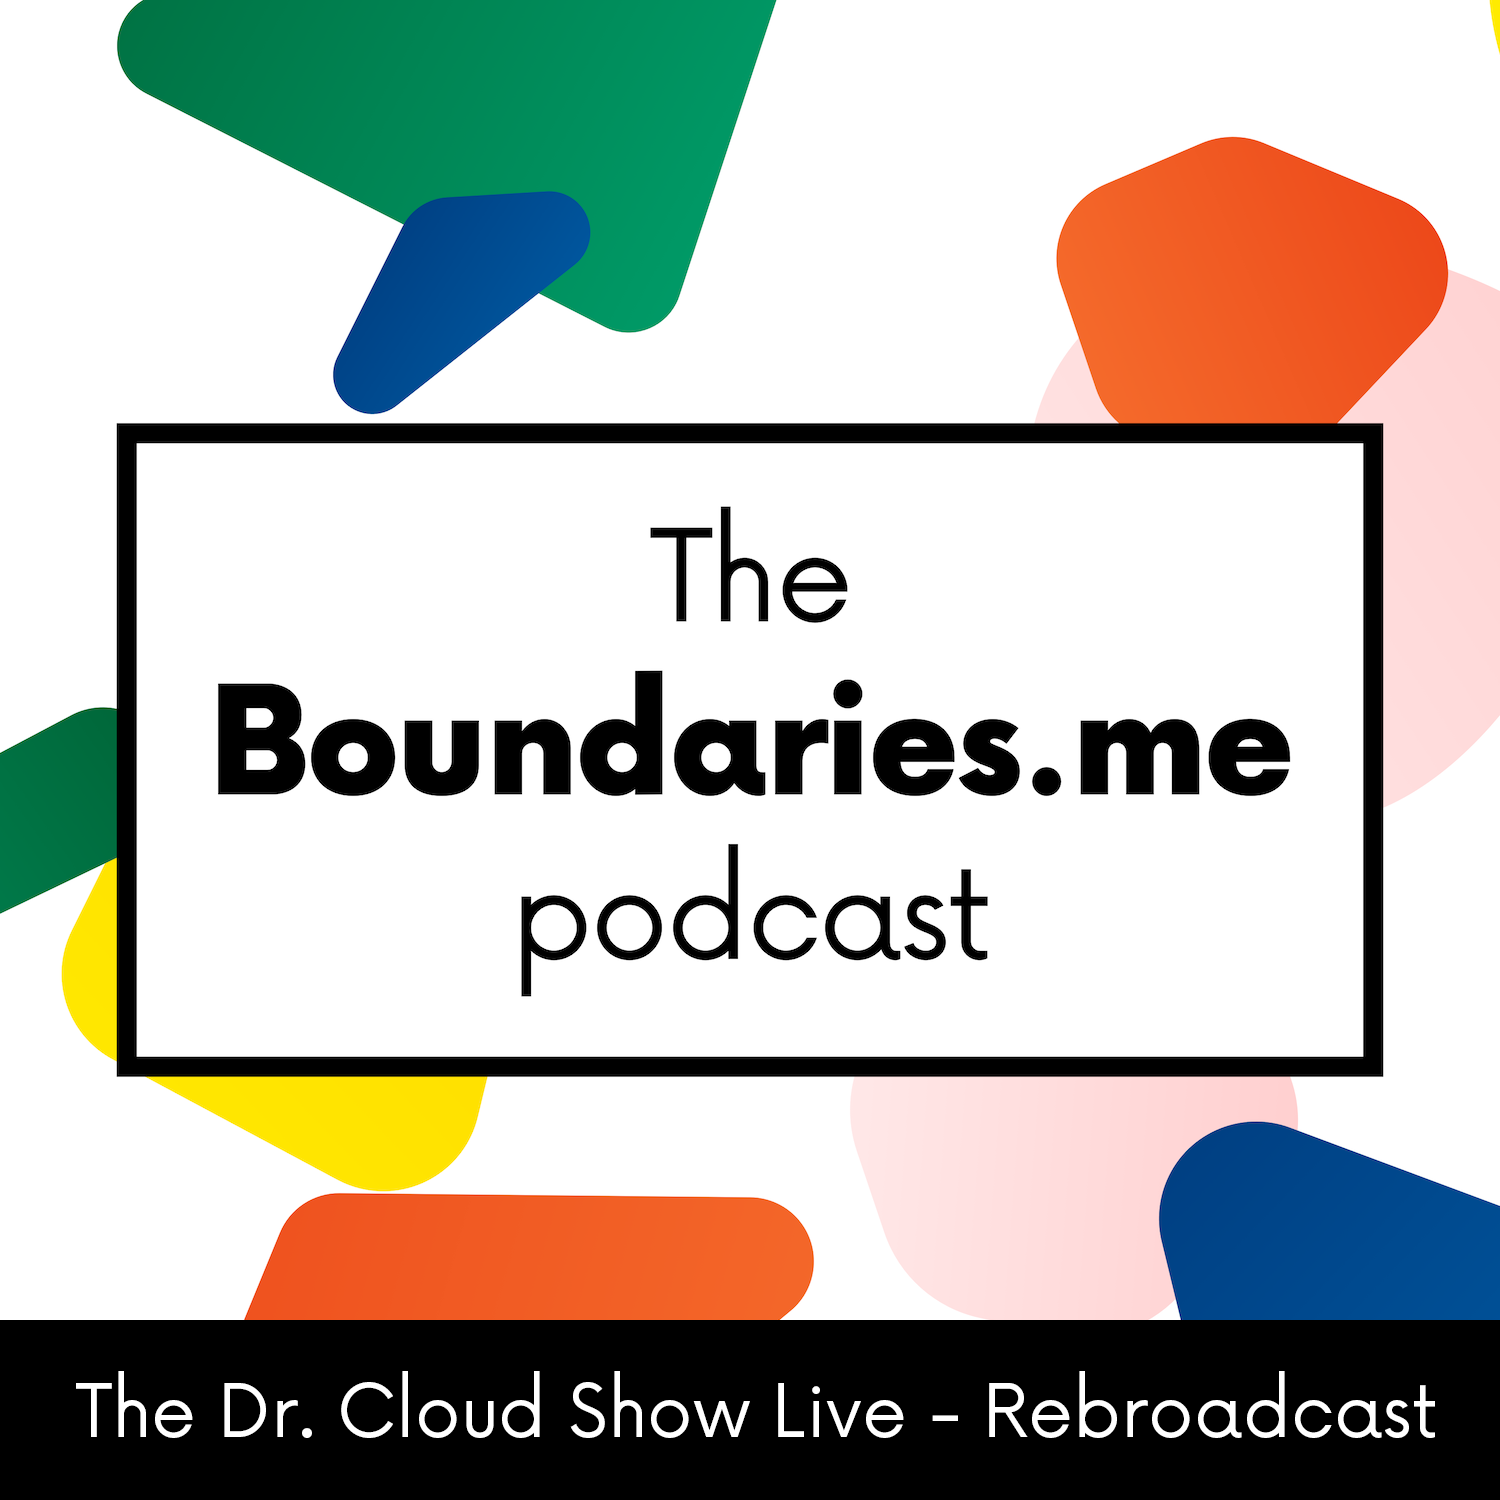 Episode 17 - The Dr Cloud Show Live - Growth in Difficult Times